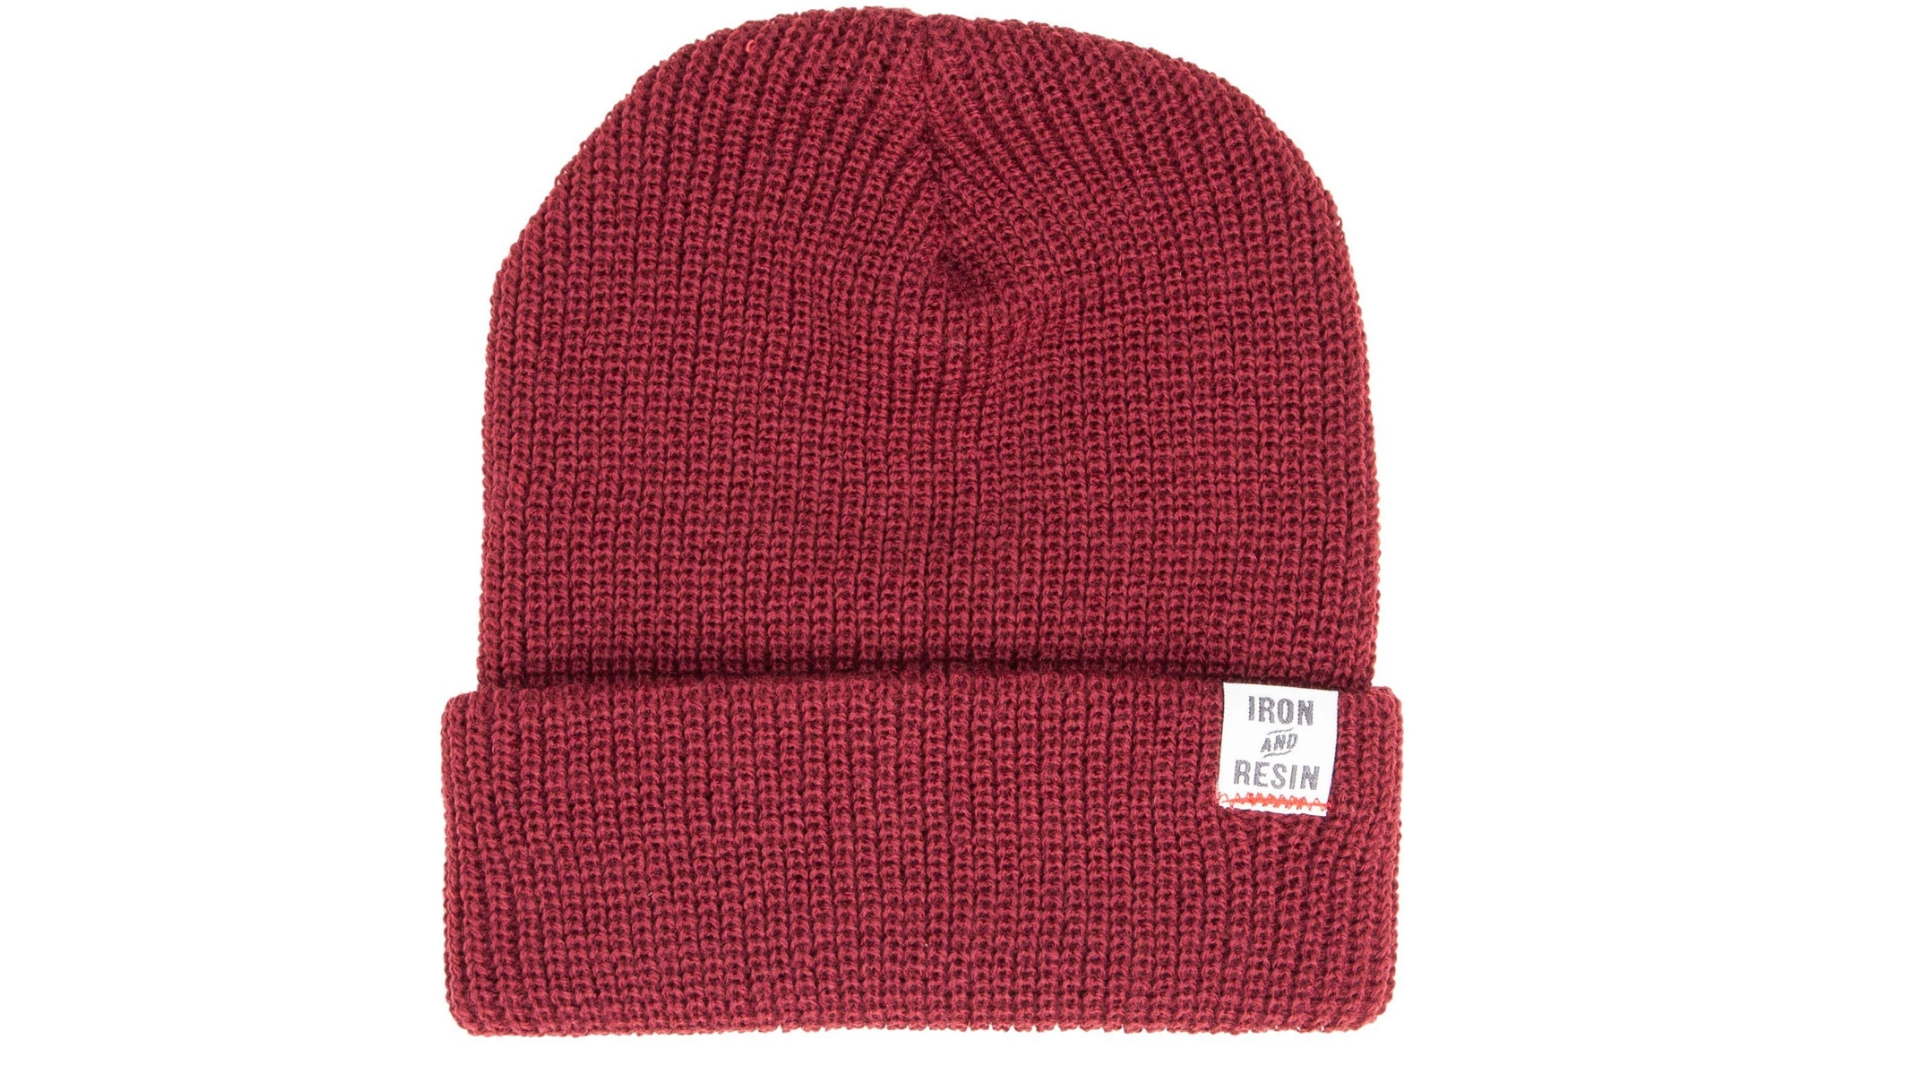 Iron & Resin Watchman Beanie in Oxblood